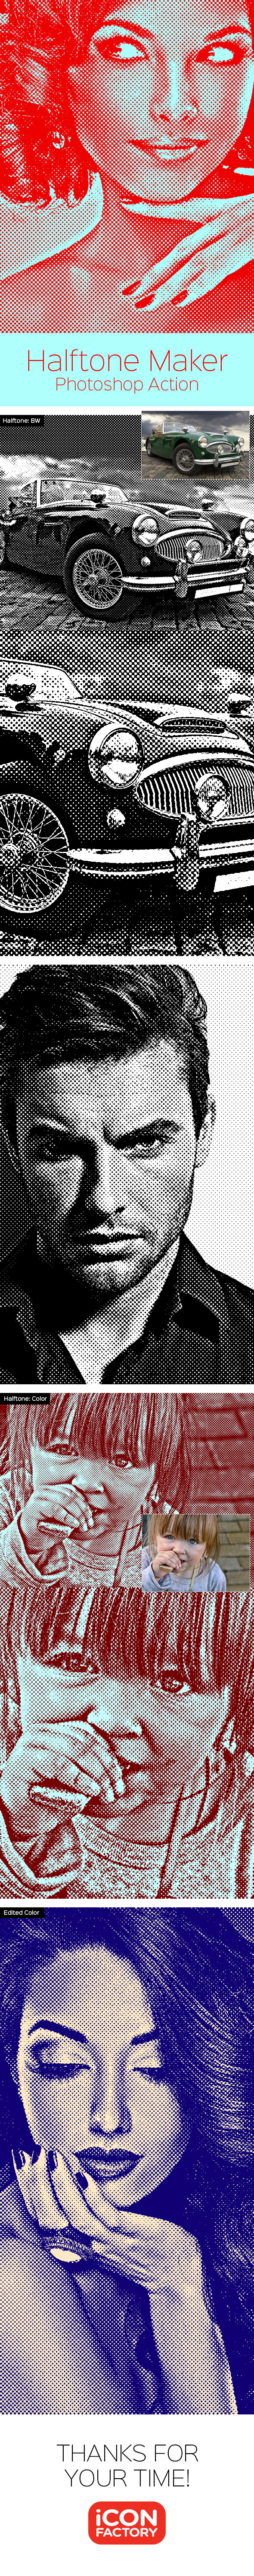 Halftone Maker Photoshop Action